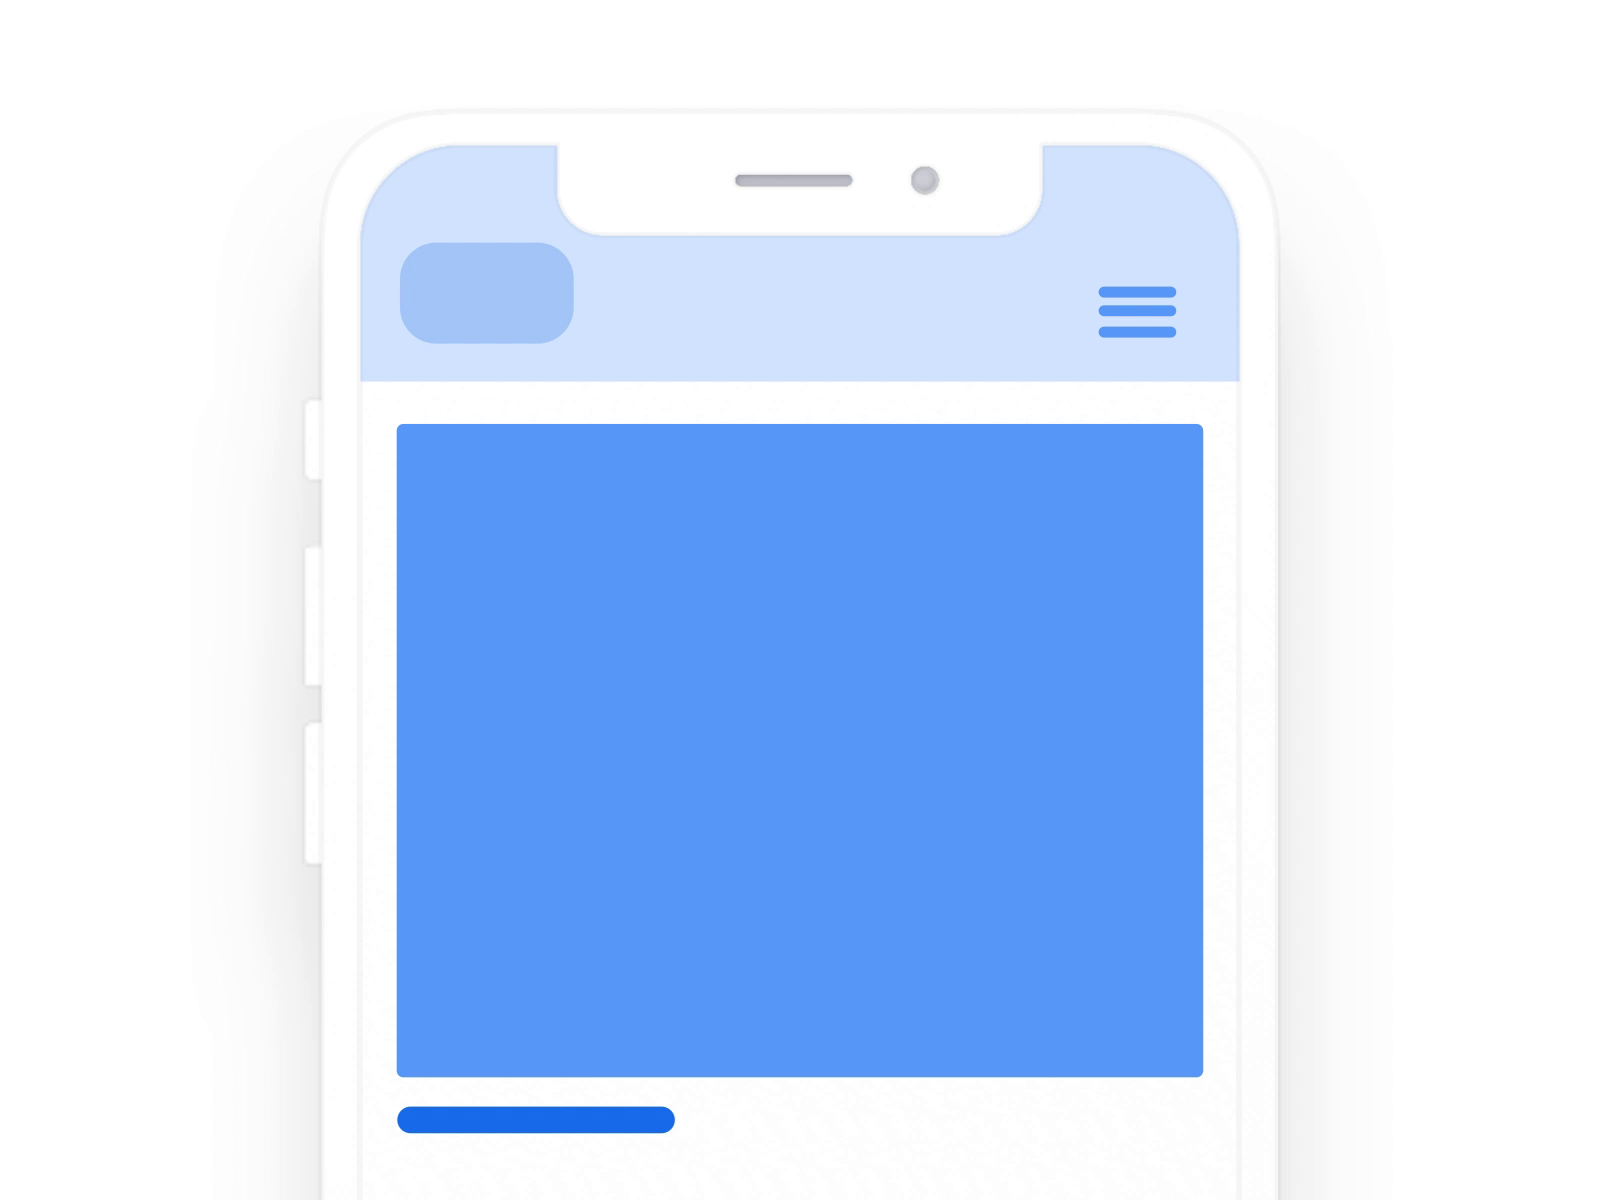 Page Notification Interaction